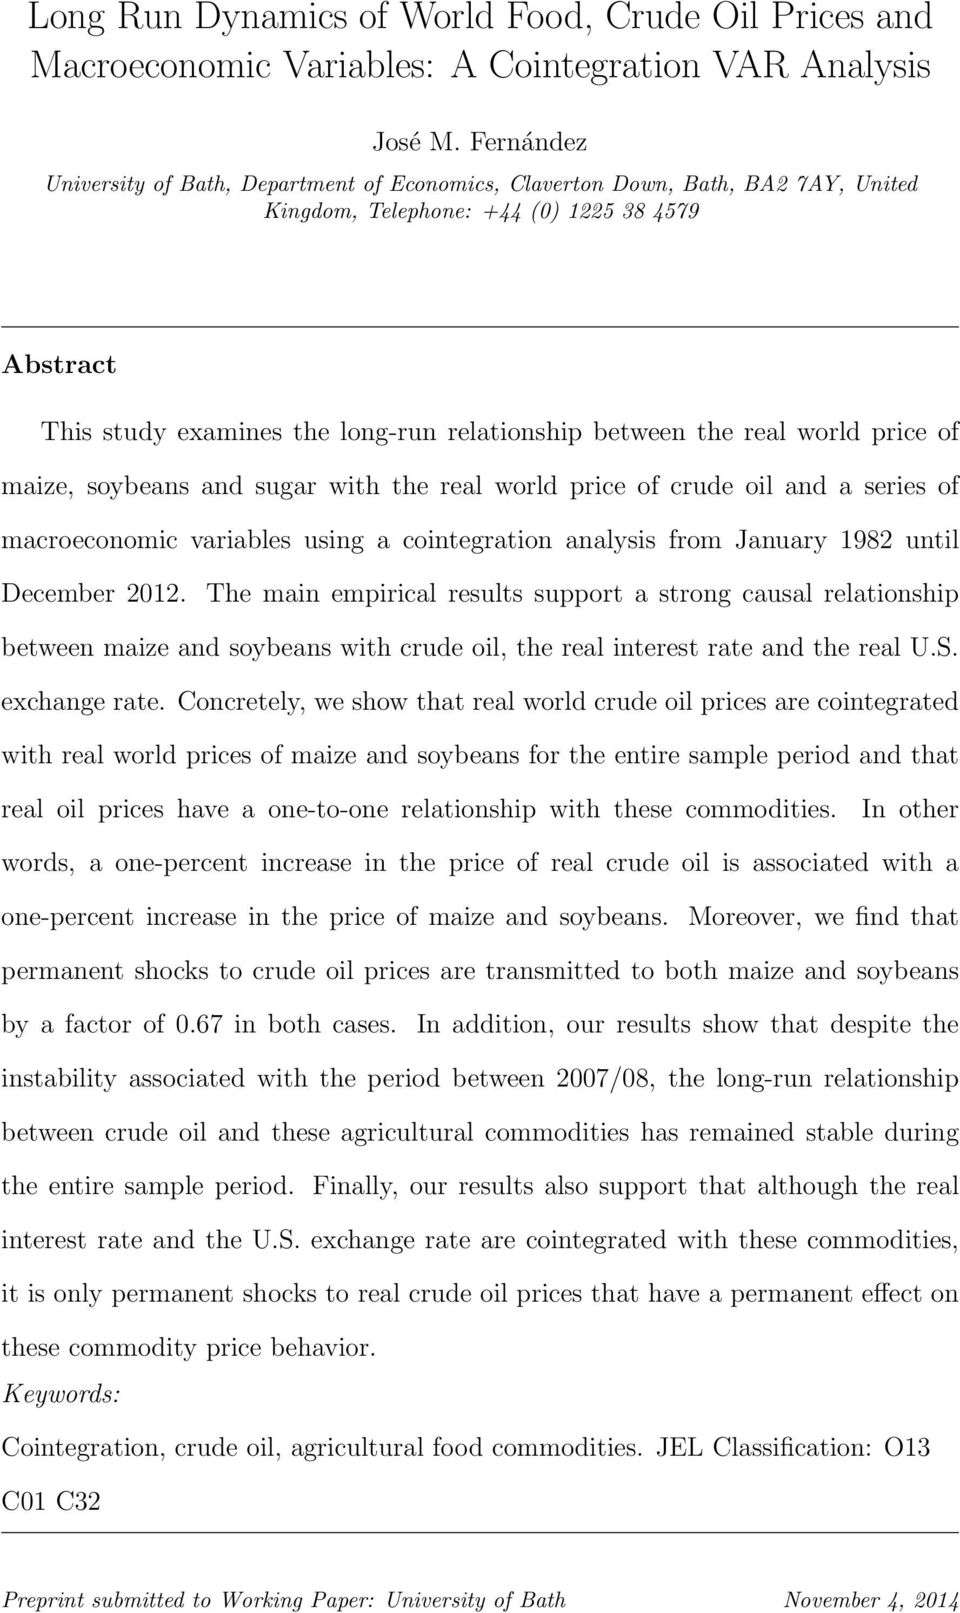 the real world price of maize, soybeans and sugar with the real world price of crude oil and a series of macroeconomic variables using a cointegration analysis from January 1982 until December 2012.